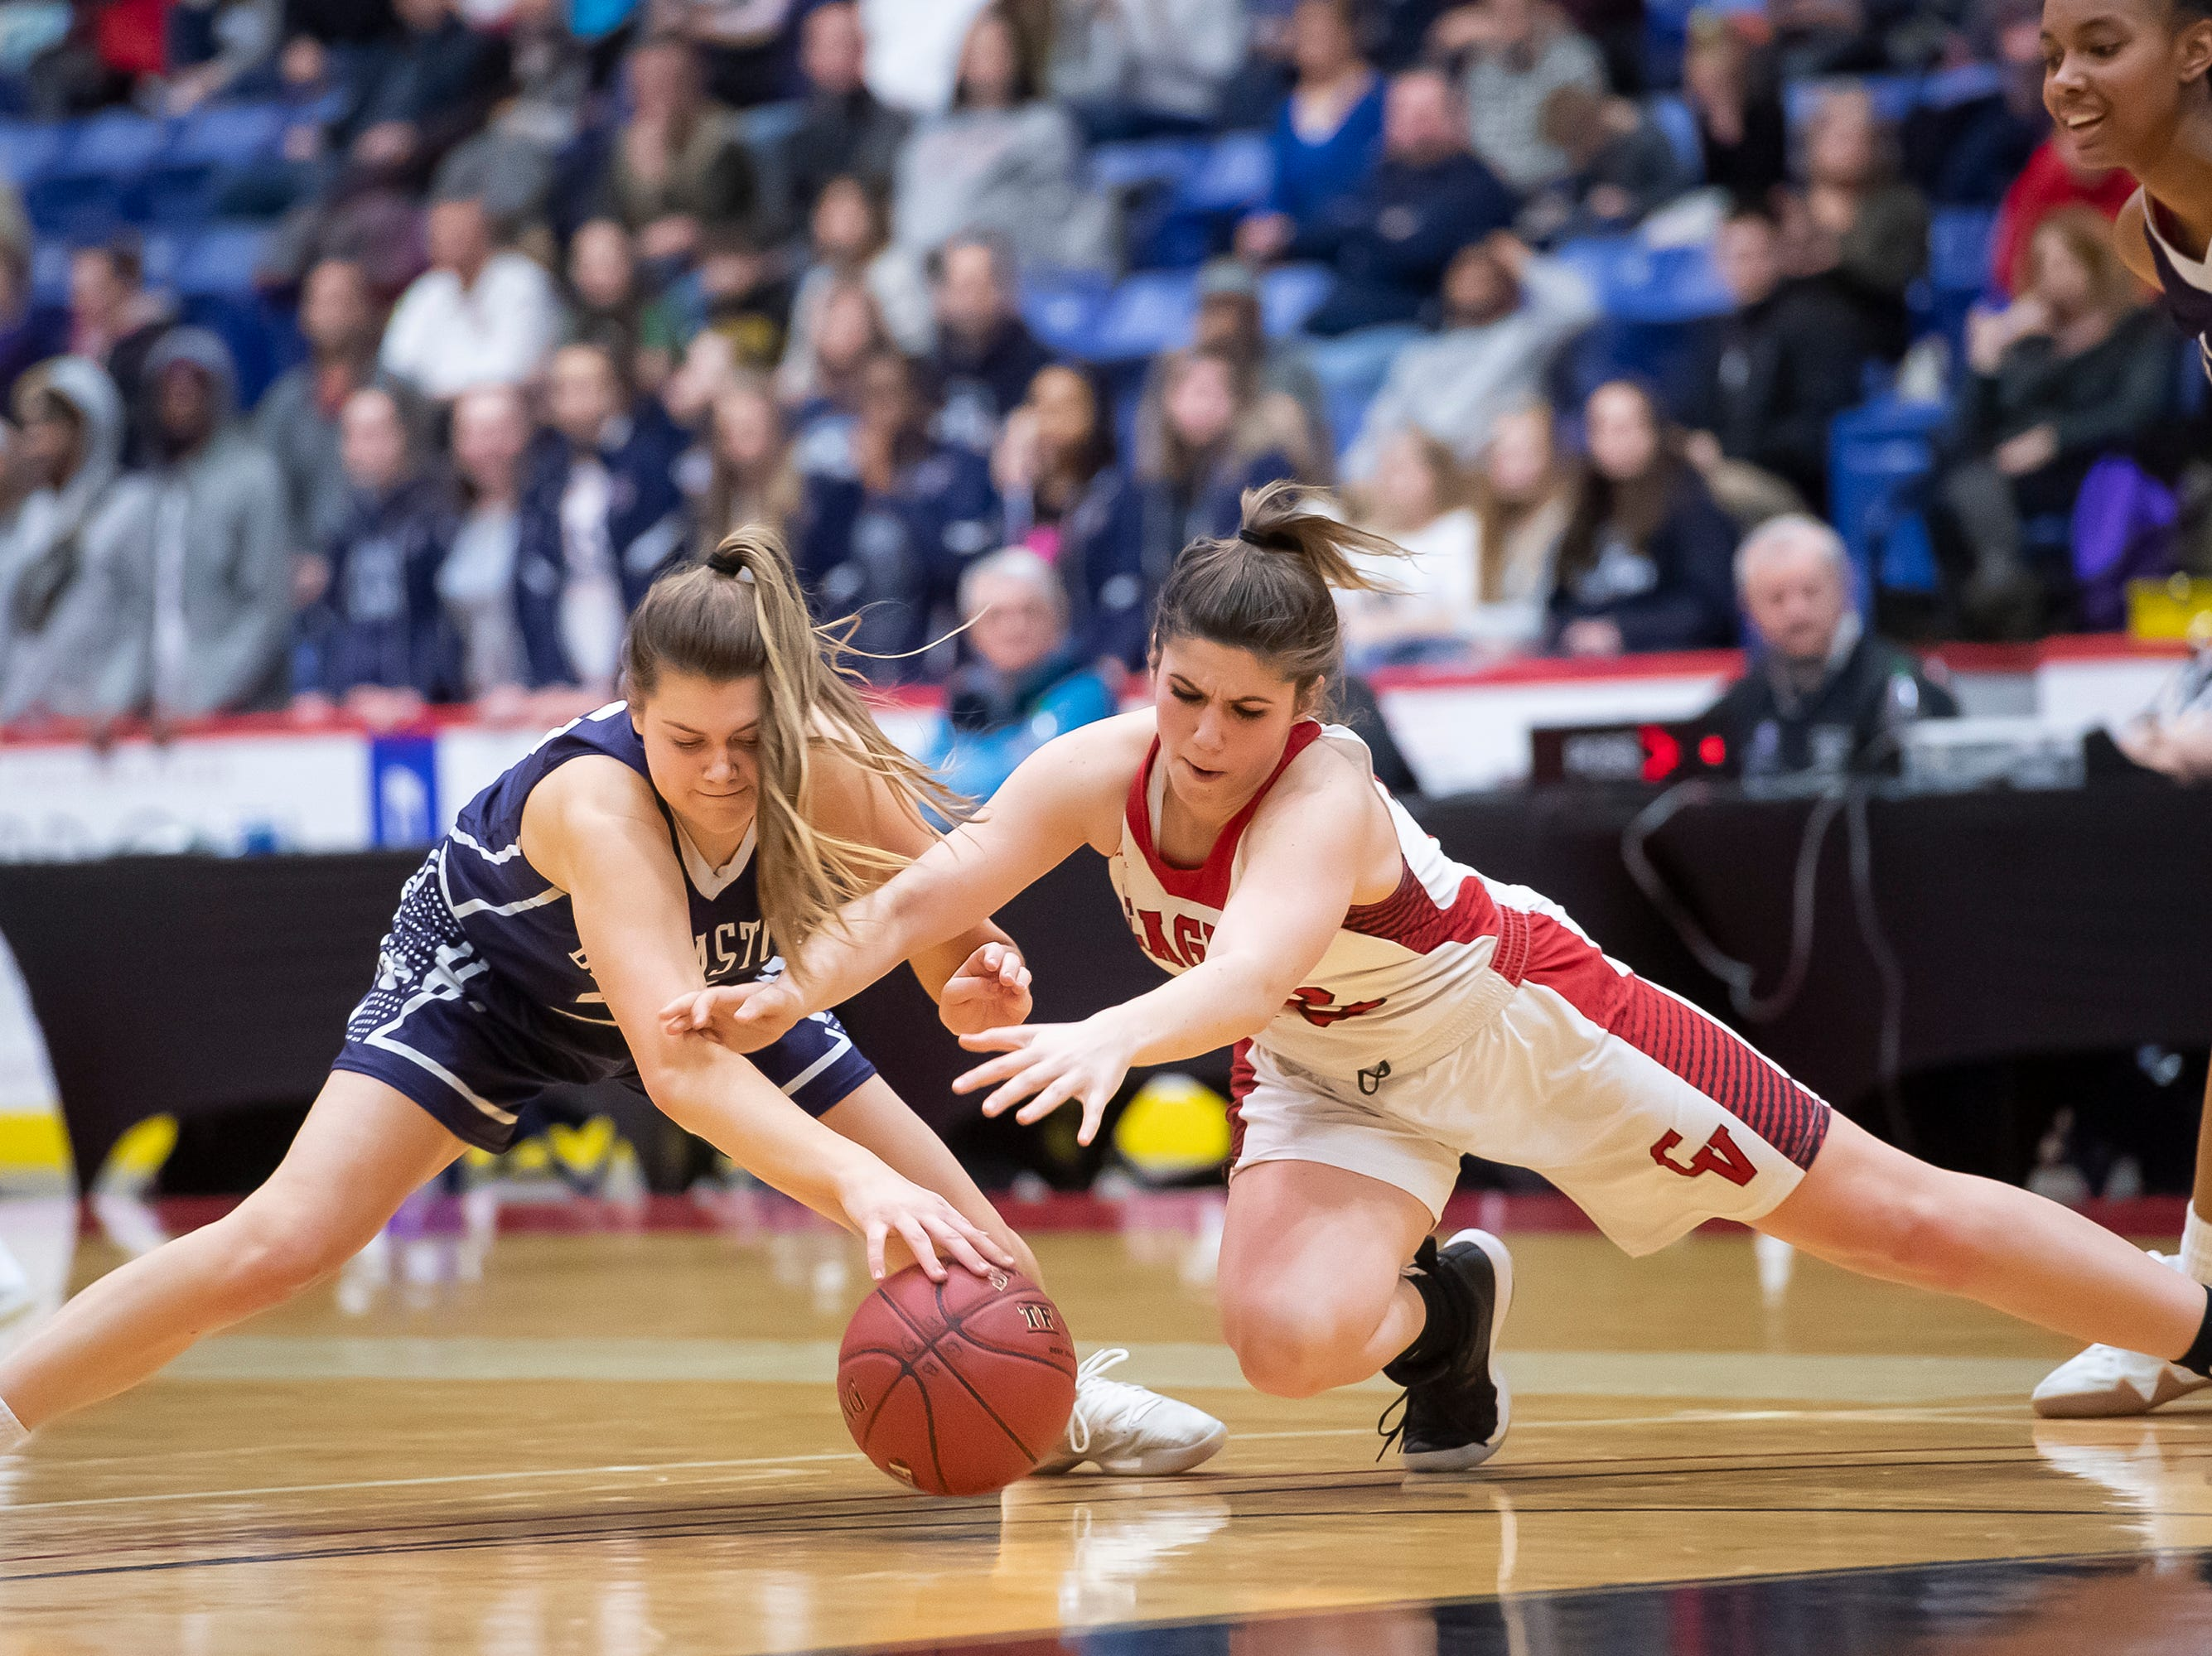 Dallastown's Madi Moore, left and Cumberland Valley's Abbie Miller reach for a loose ball during the District 3 6A girls championship game at the Santander Arena in Reading, Pa., Friday, March 1, 2019. Dallastown fell 33-27.